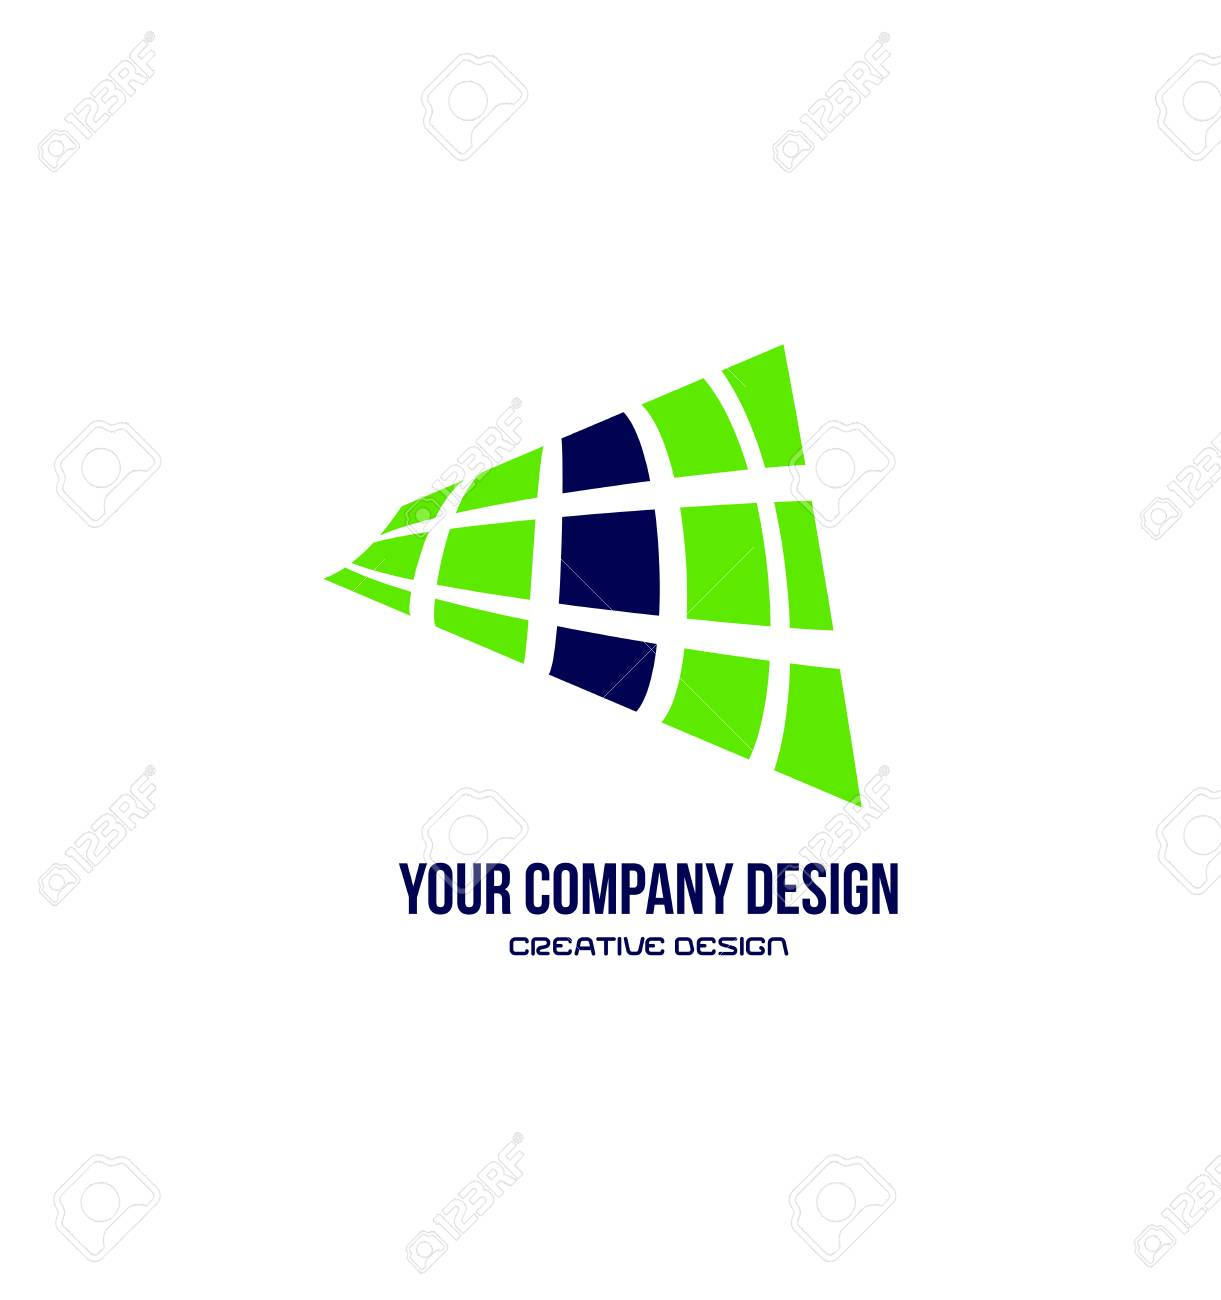 vector company logo icon element template abstract grid green